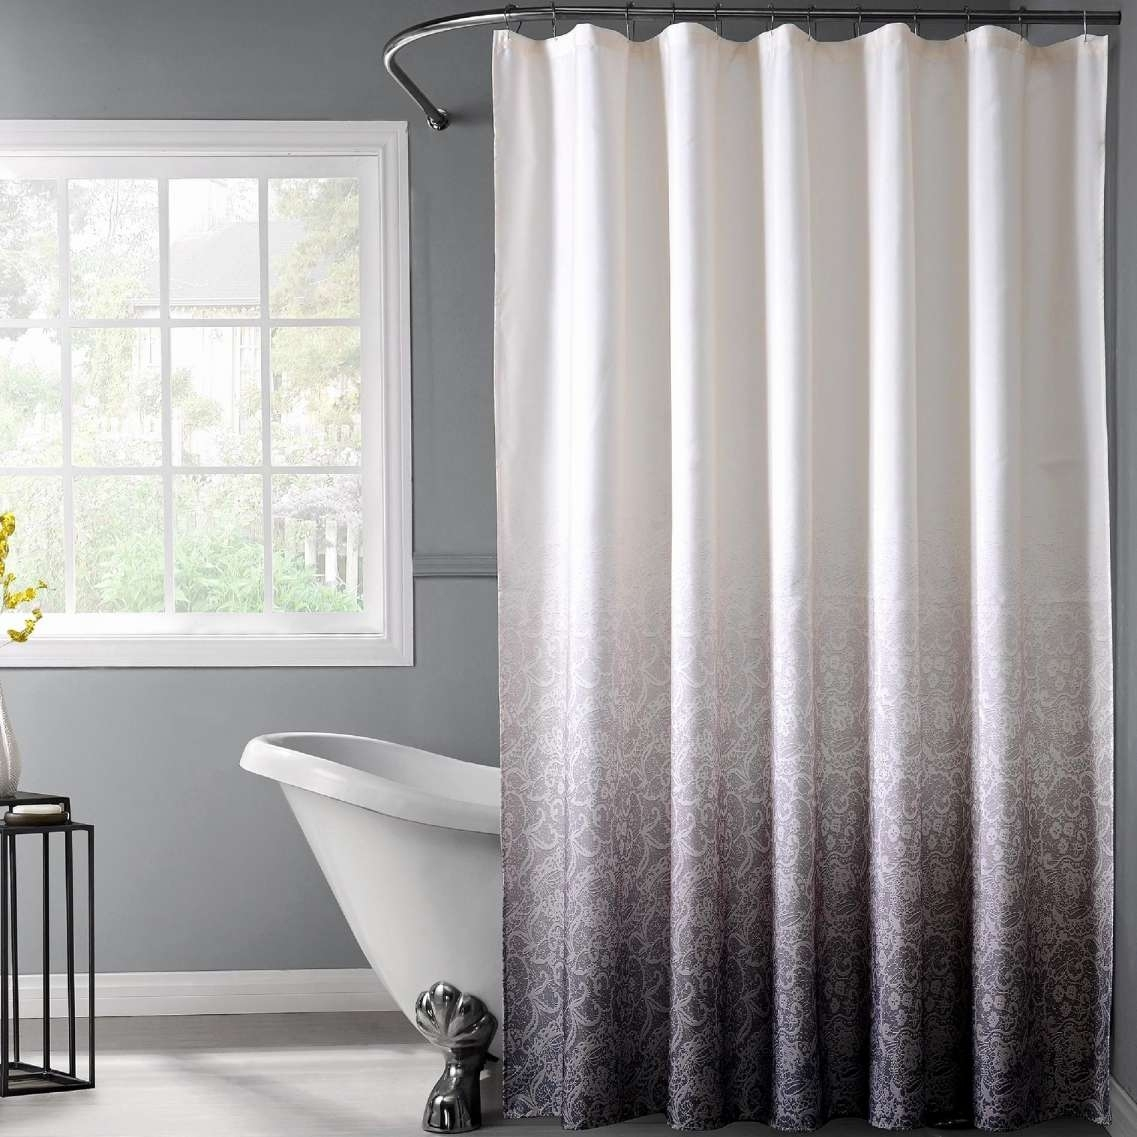 32 Lovely Shower Curtain Wall Art Ideas Narrow Shower Curtain Ideas Regarding Shower Curtain Wall Art (Photo 20 of 20)